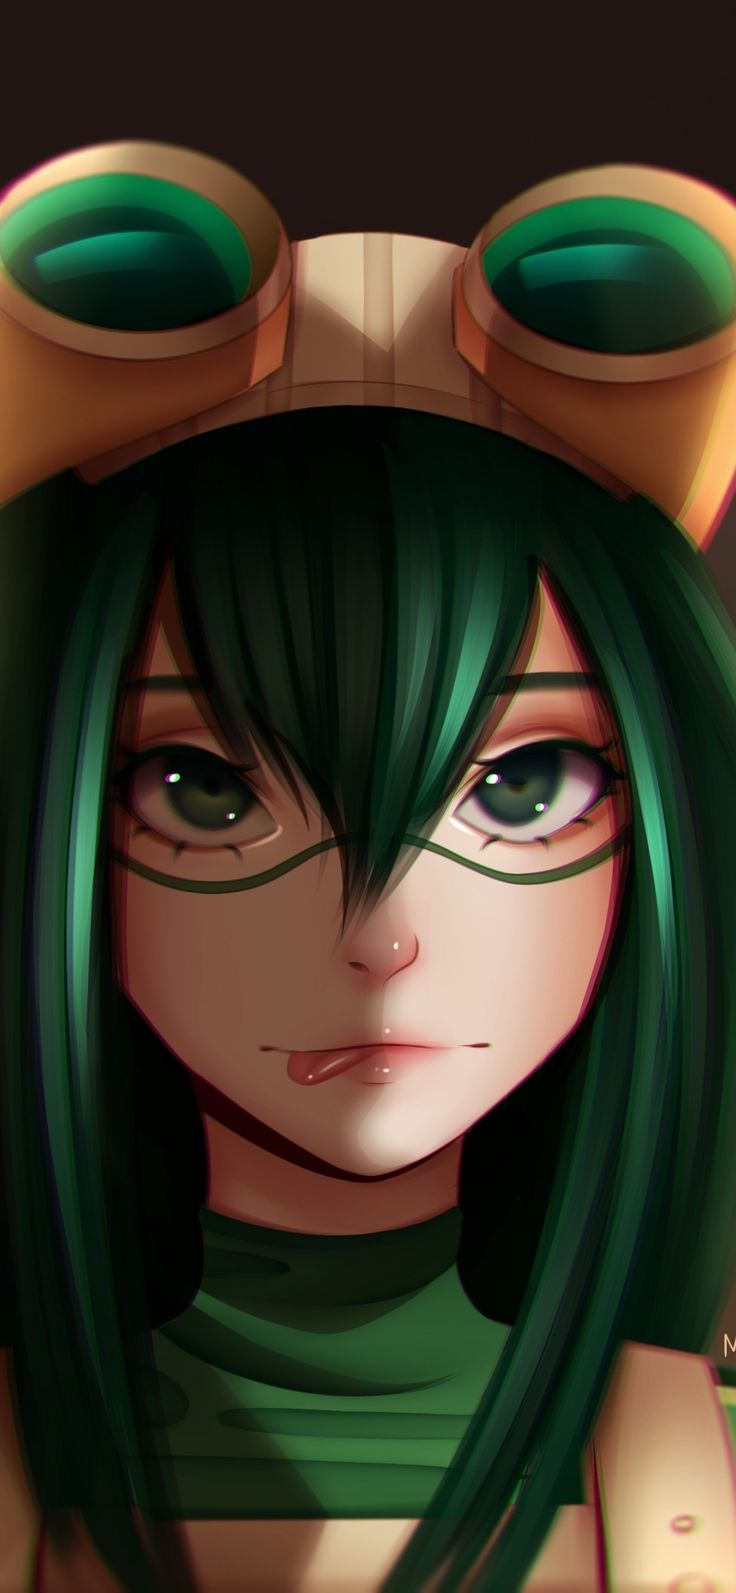 Browse Tsuyu Images And Ideas On Pinterest